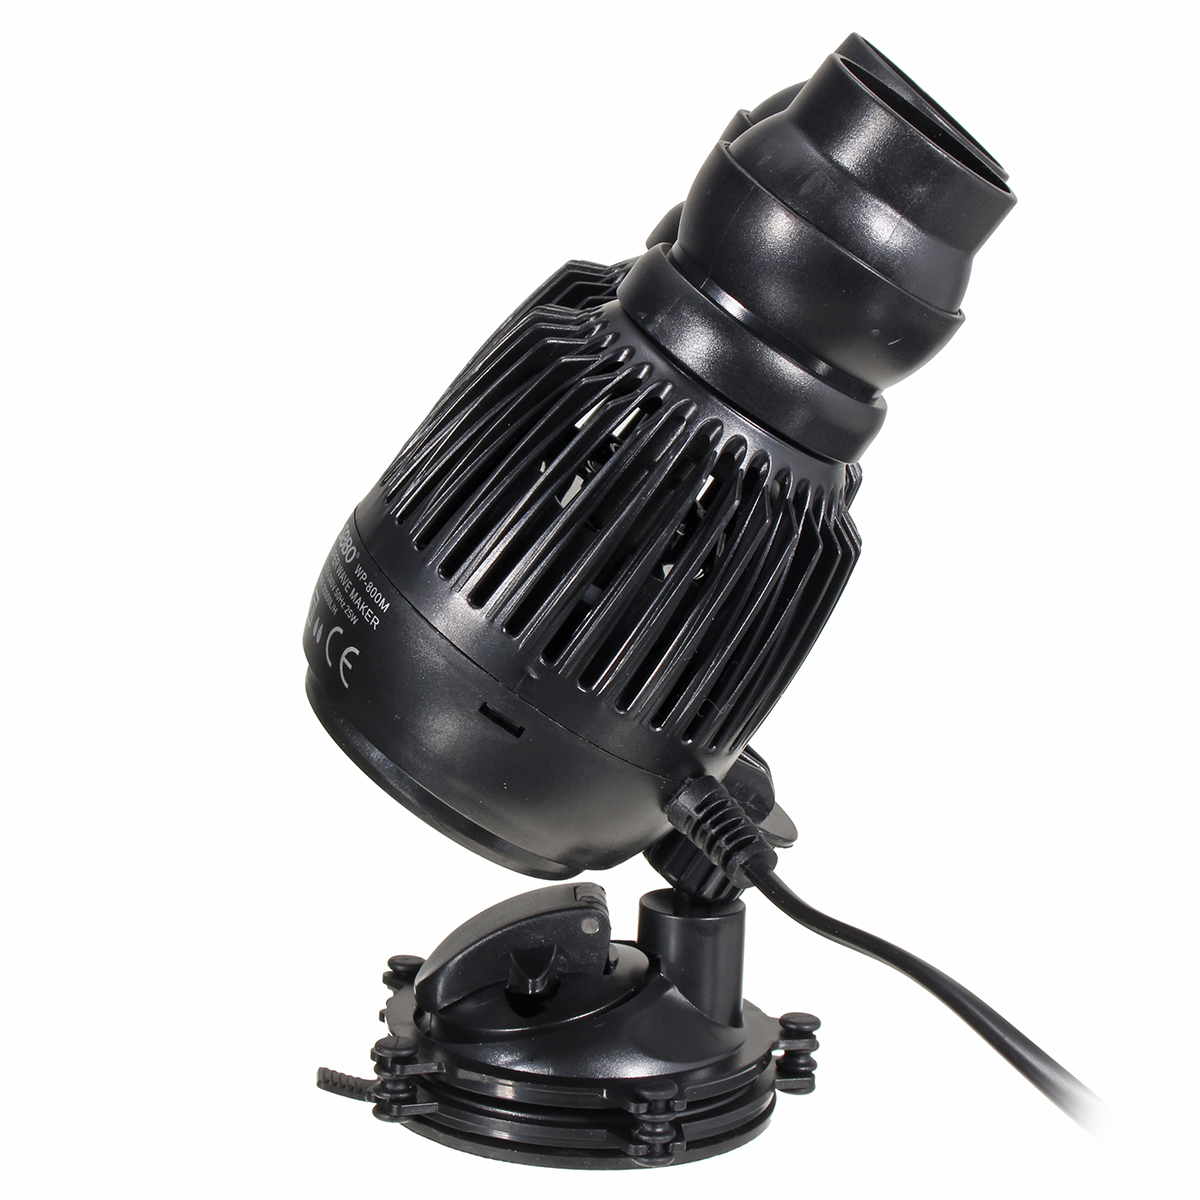 220V 3W-25W Submersible Wave Maker Water Pump Powerhead Pump Marine Reef Coral Filter